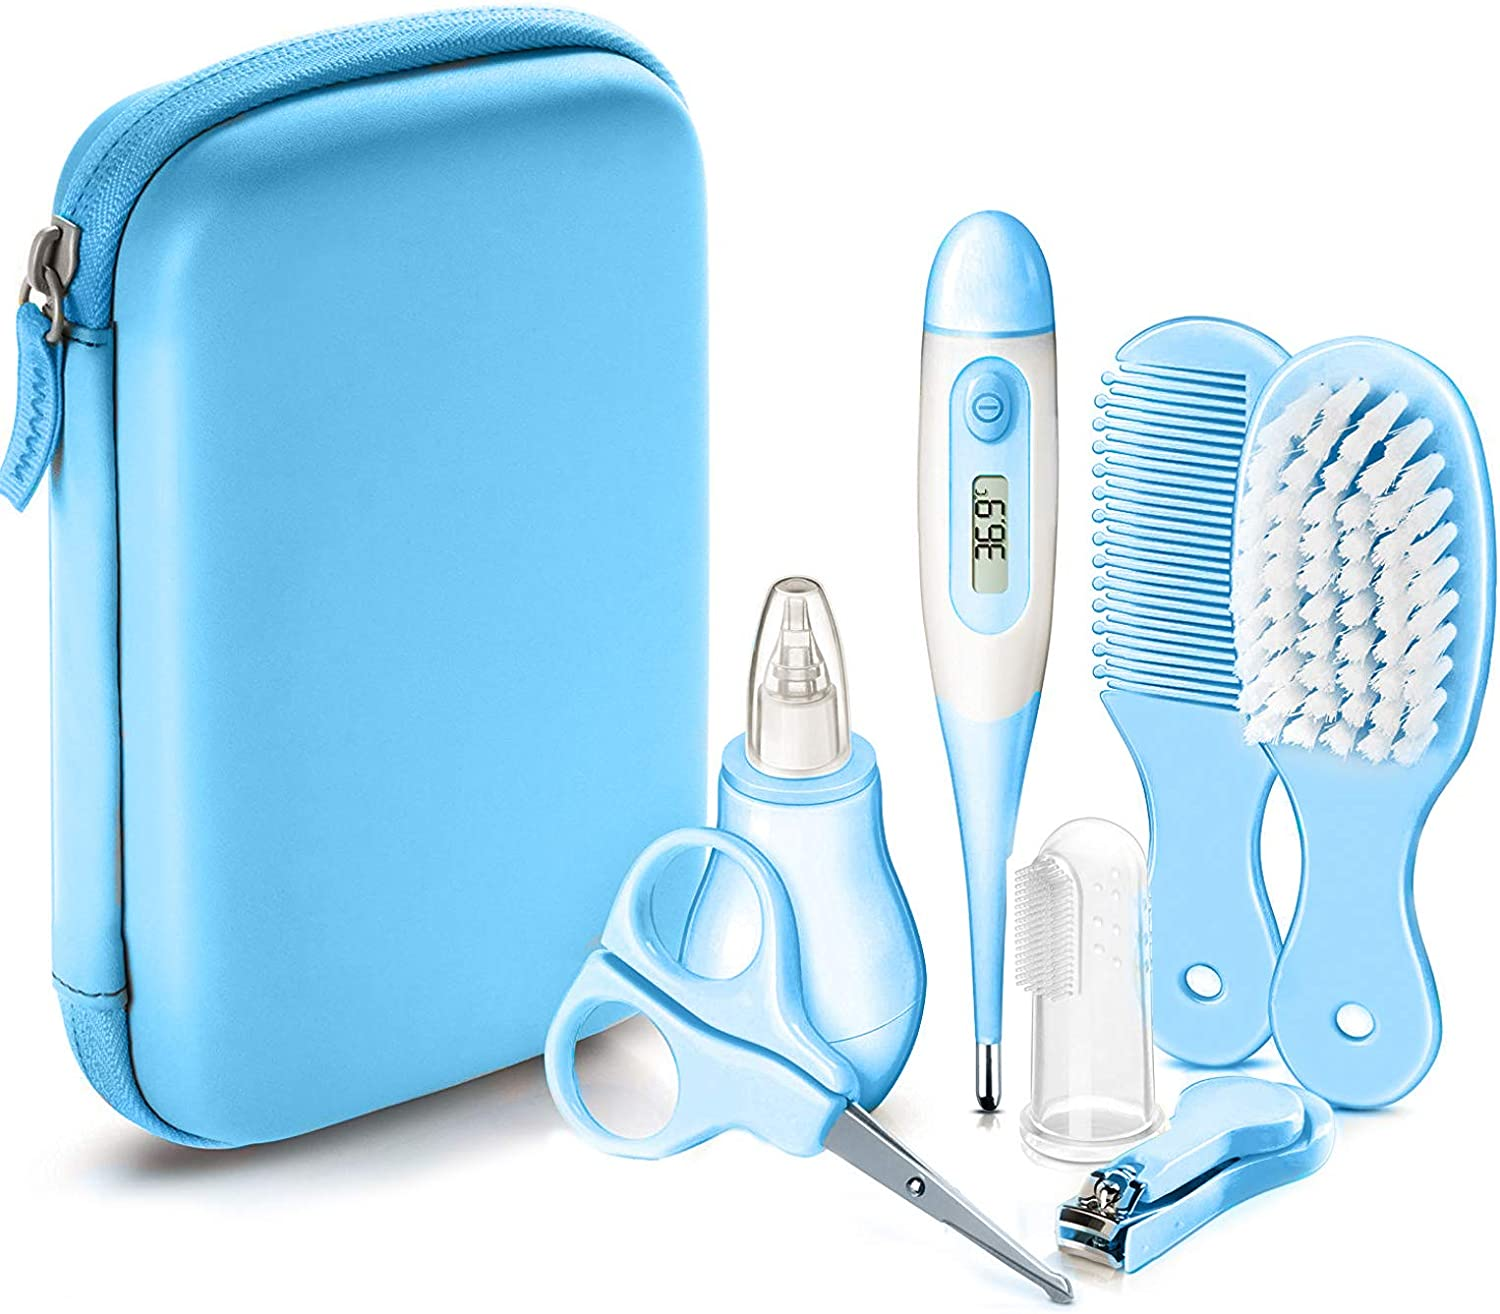 Vetté Baby Grooming Kit - Infant Complete Nursery Care Kit with 2 Nail Trimmers, 2 Hair Brushes, 3 Nose Suction and Baby Thermometer for a Baby Shower.